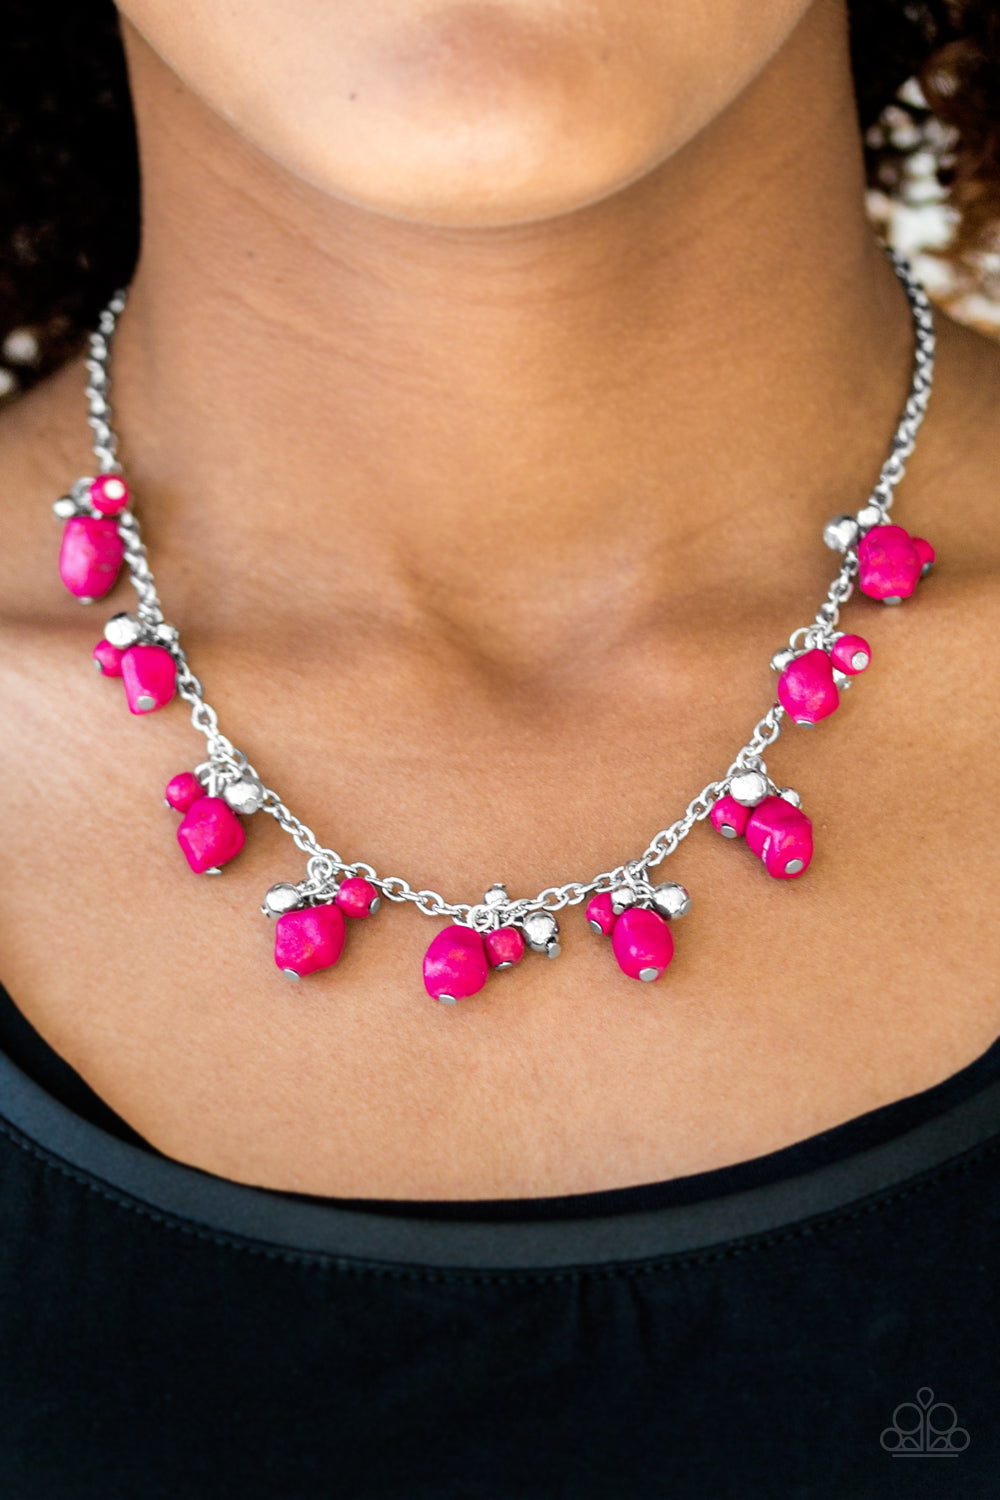 Varying in shape and size, shiny silver beads and vivacious pink stone beading swing from the bottom of a shimmery silver chain, creating a colorful fringe below the collar. Features an adjustable clasp closure.  Sold as one individual necklace. Includes one pair of matching earrings.  Always nickel and lead free.